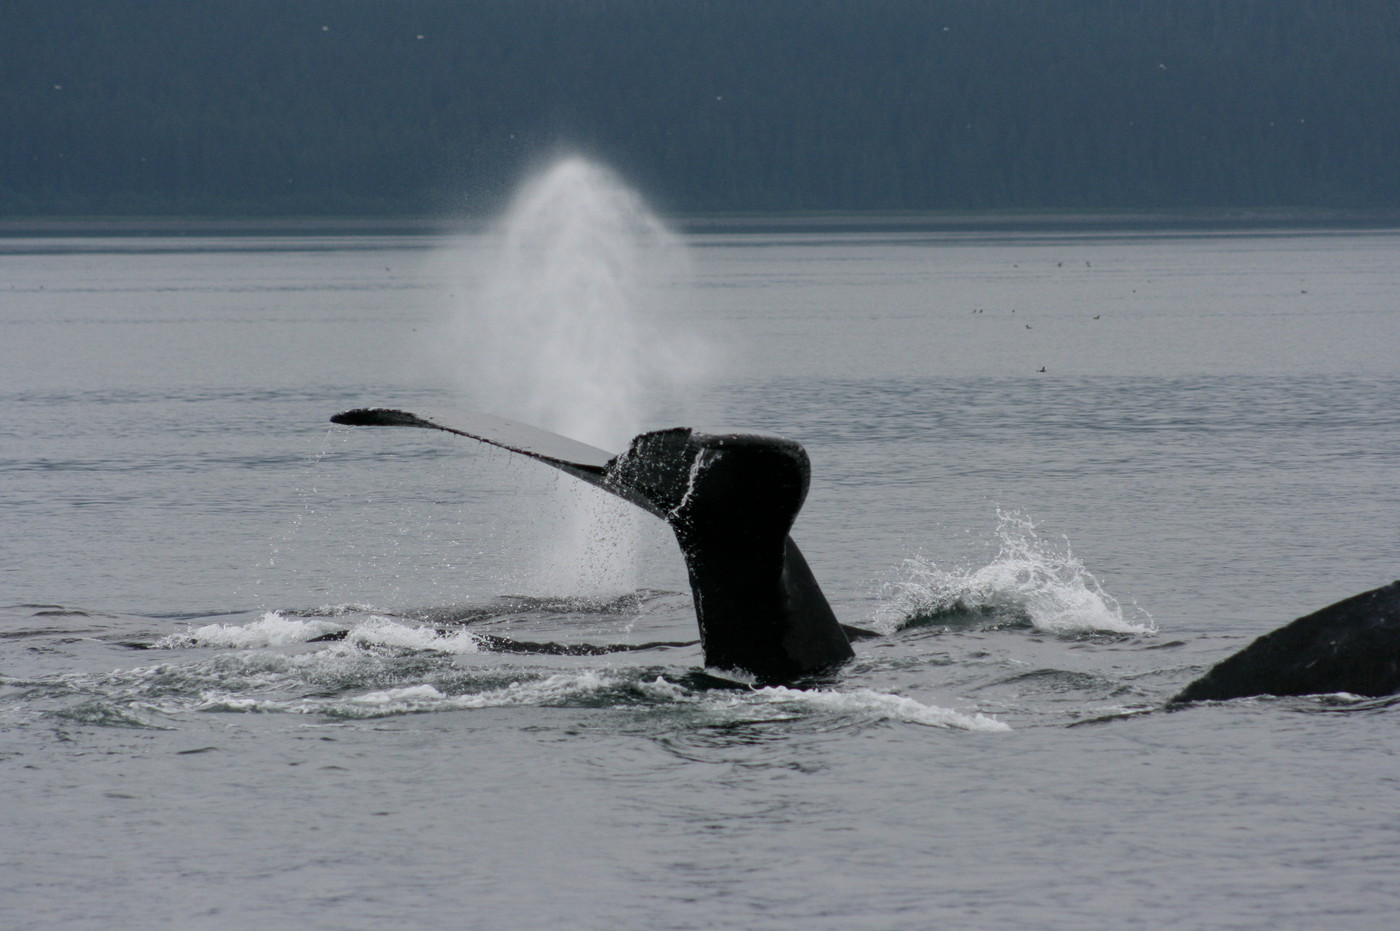 Whales blow and show their tales